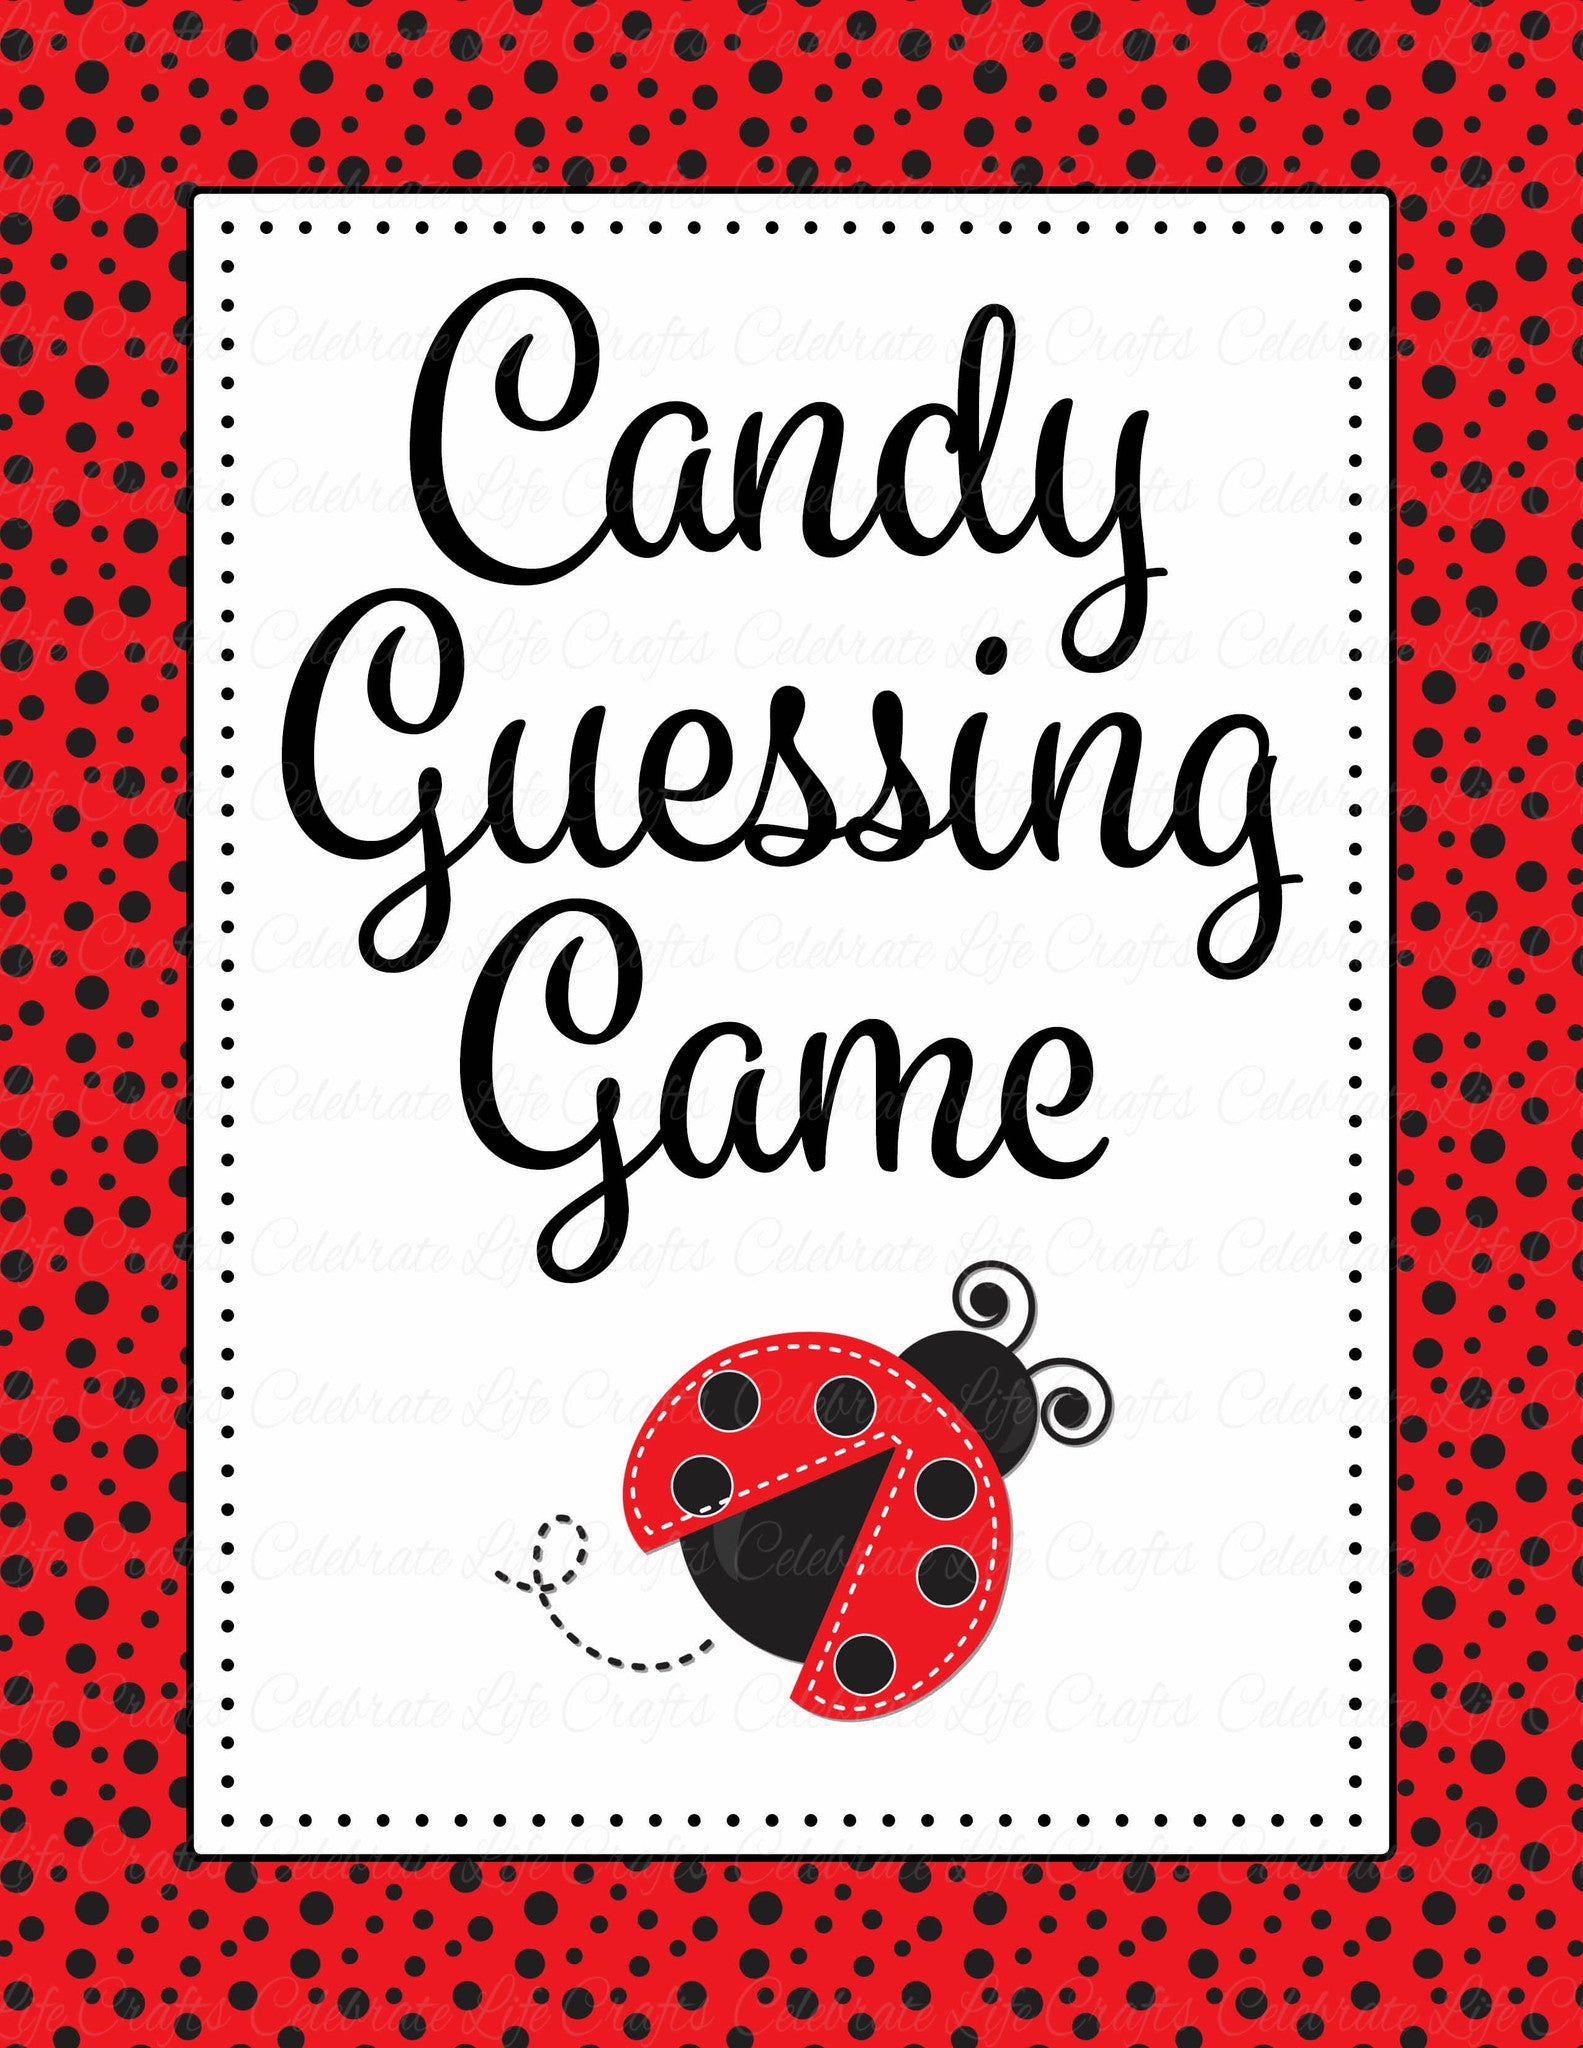 Candy Guessing Game   Printable Download   Red Black Ladybug Baby Shower  Game   B10002.